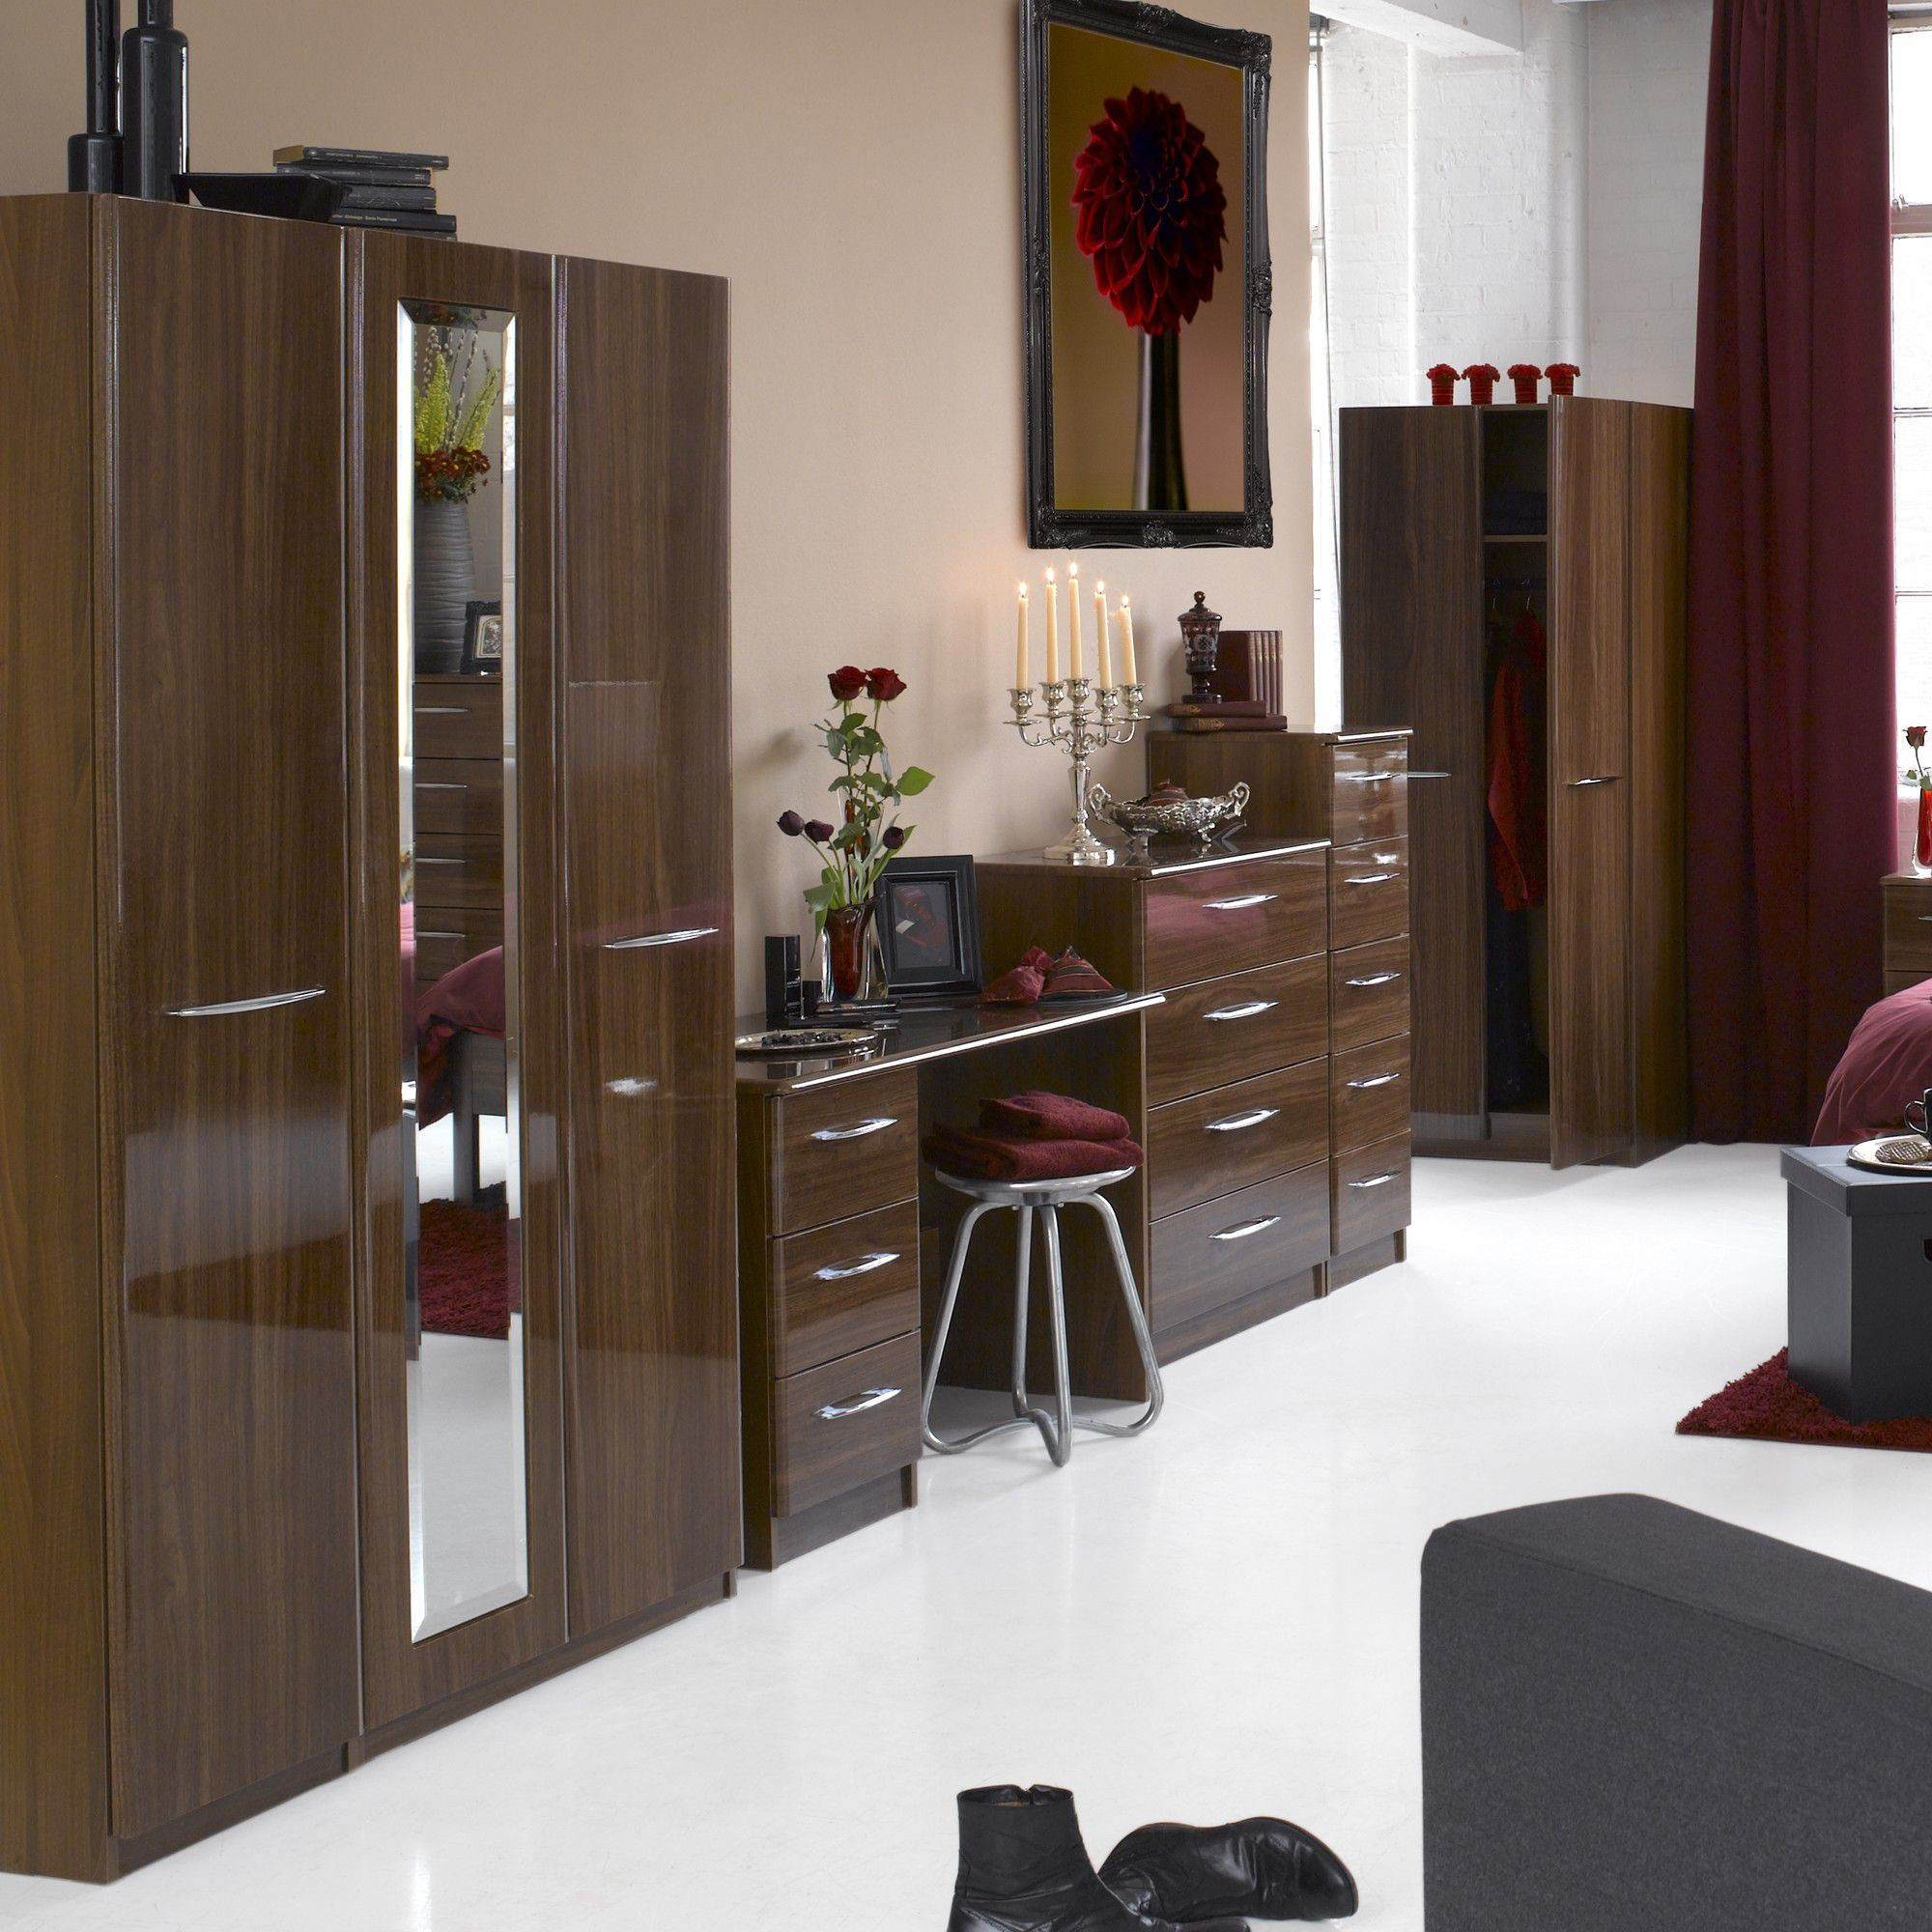 Alto Furniture Visualise Murano Three Door Wardrobe in High Gloss Walnut at Tesco Direct